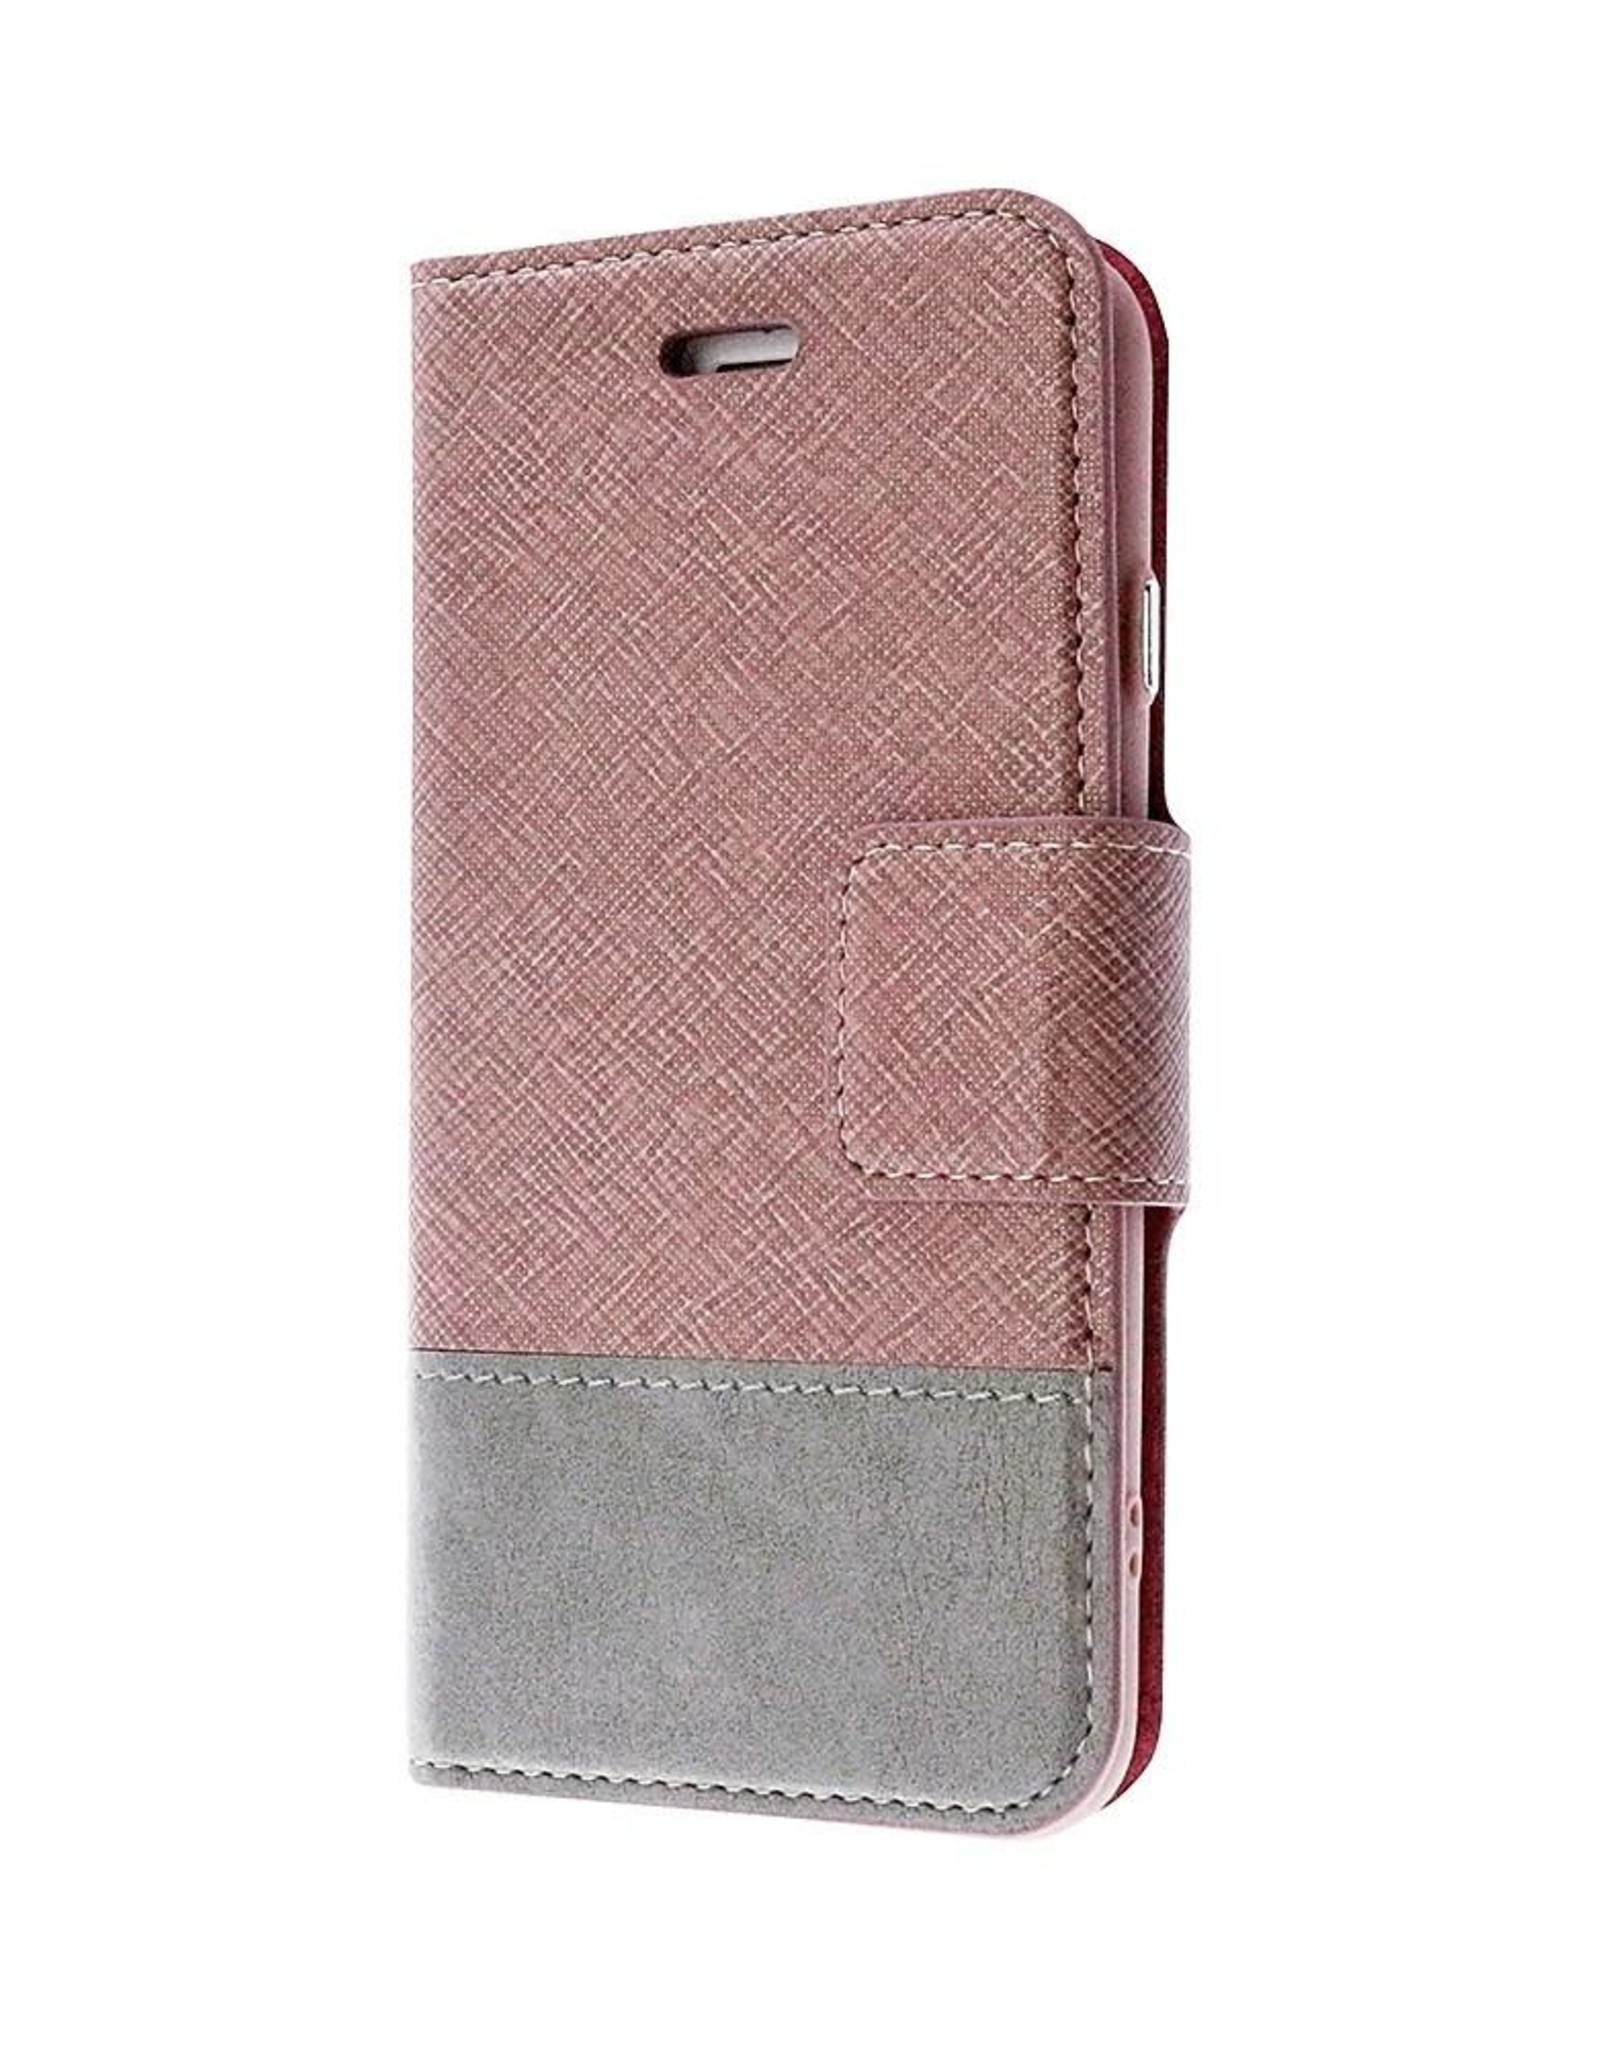 Caseco Caseco | Broadway 2-in-1 RFID Shield Folio Case - iPhone SE Rose Gold CC-BD-iPSE-RG